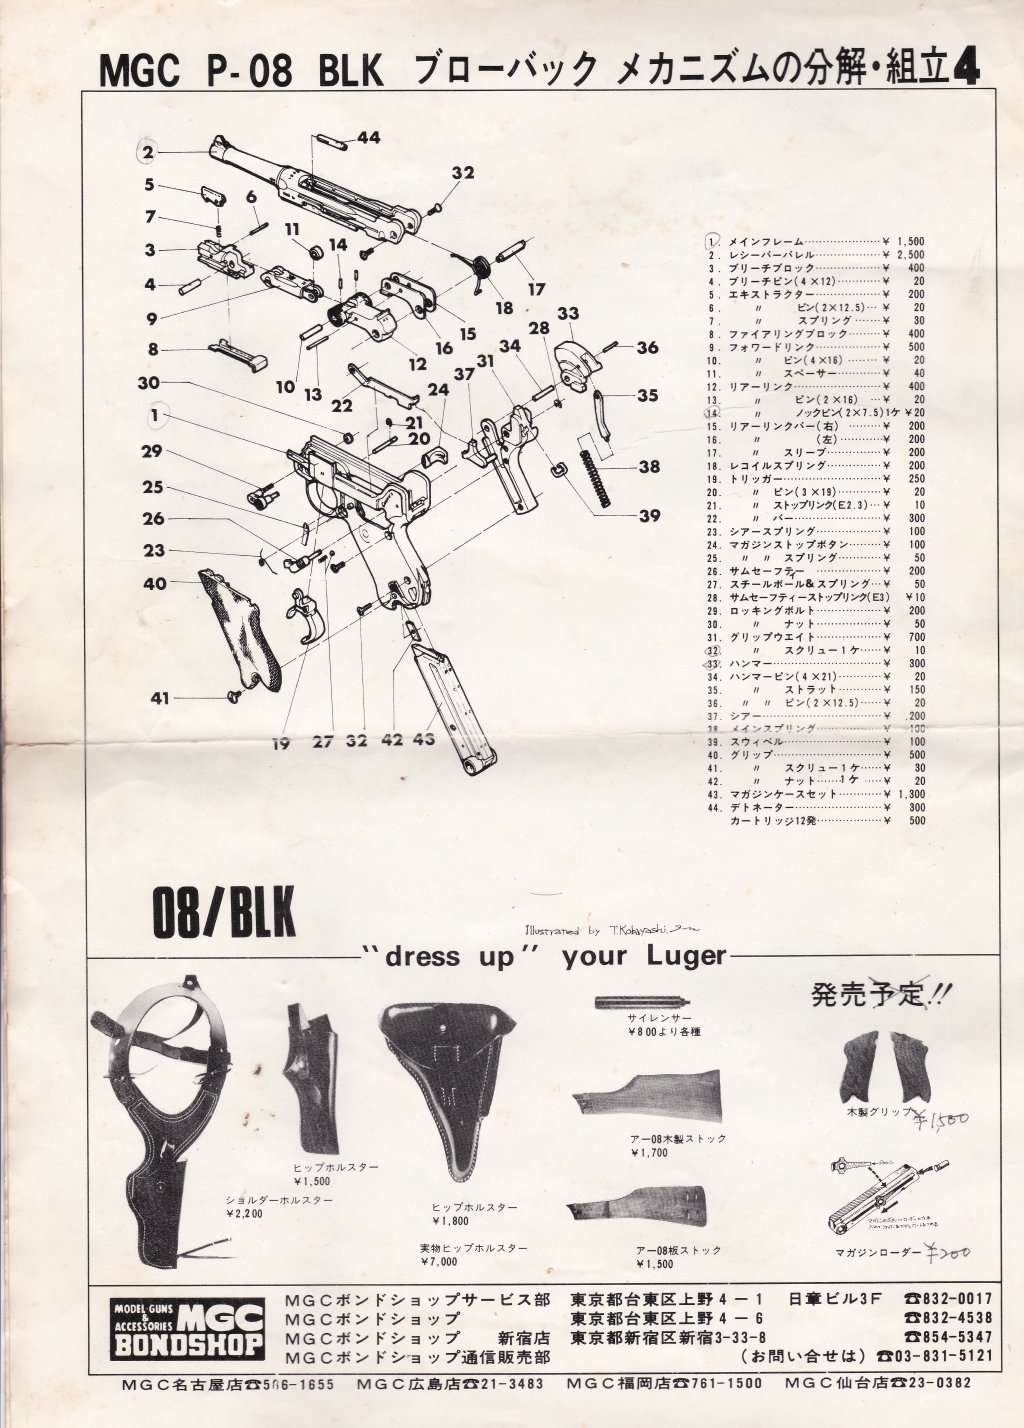 Mgc 1911 Parts Diagram Library Of Wiring Pistol Also With Colt Exploded P08 Abs Version Rh Mp40modelguns Forumotion Net Description Schematic Pdf